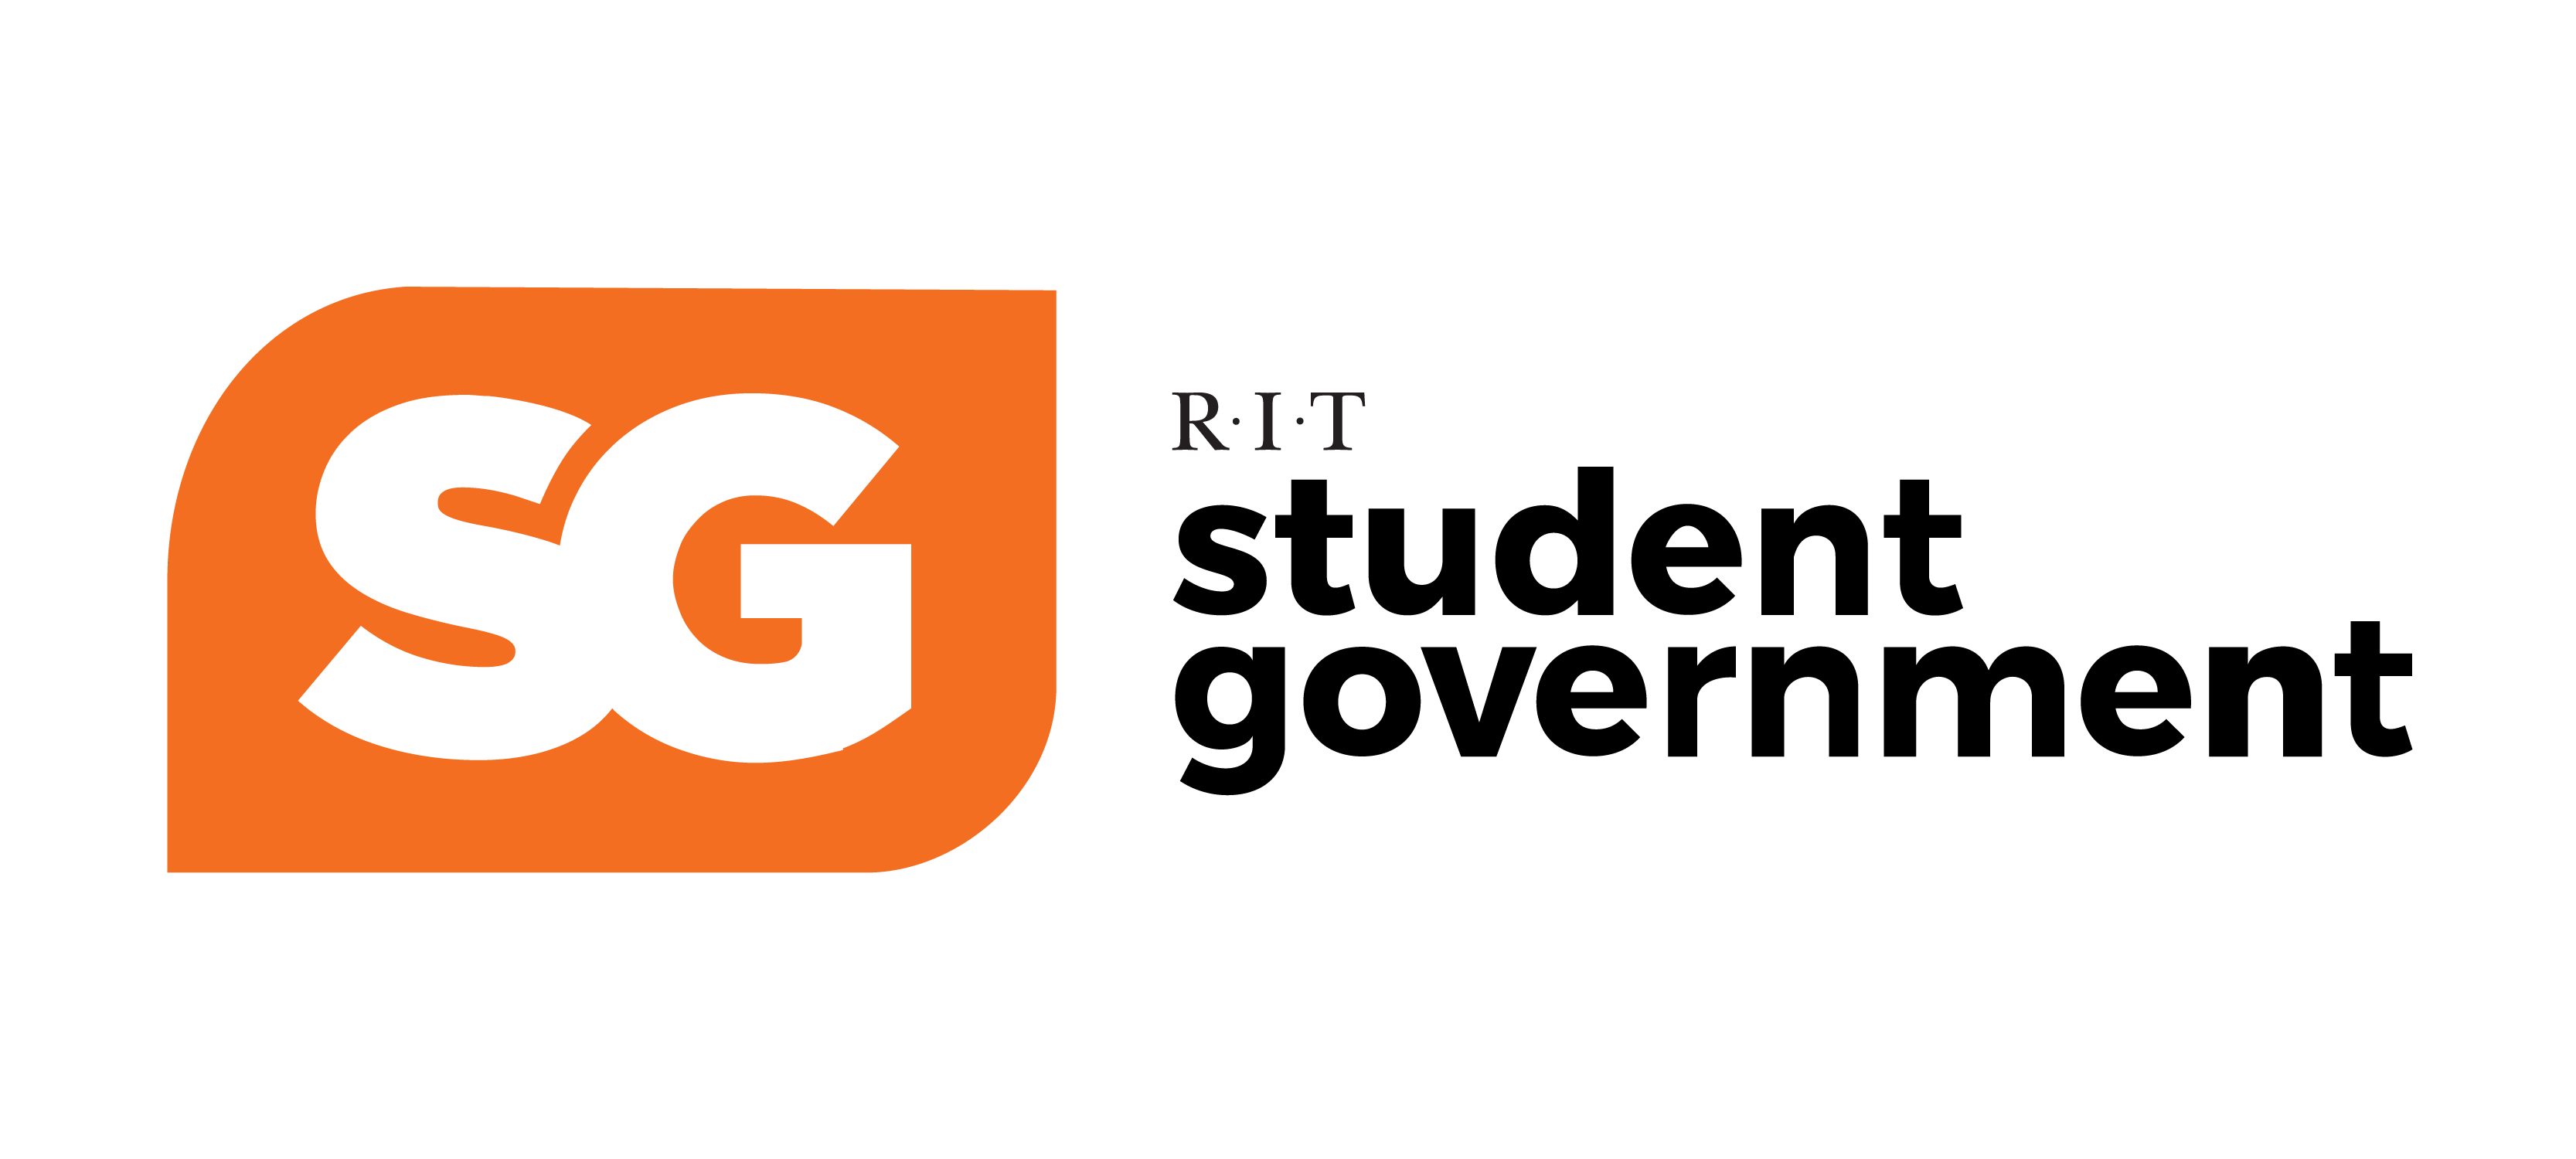 How to change the color of a png logo. Sg logos rit student